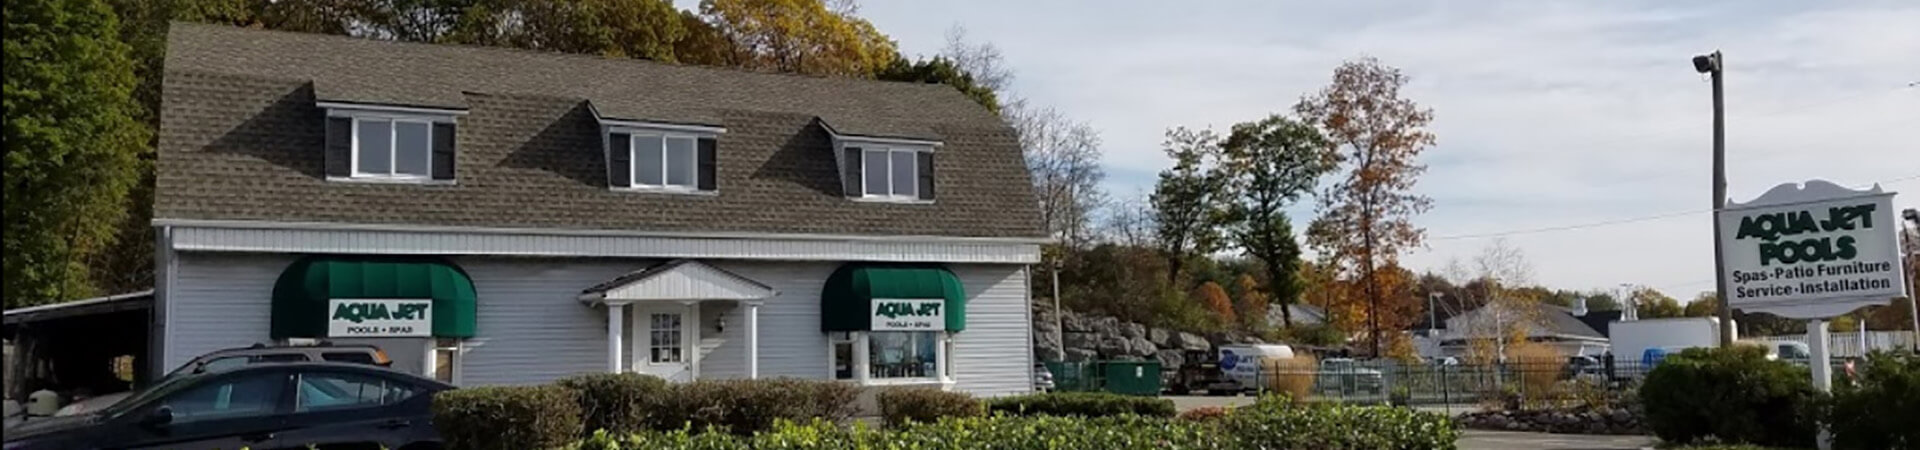 Lake Katrine Ny Hot Tub Dealer Aqua Jet Pools Spas